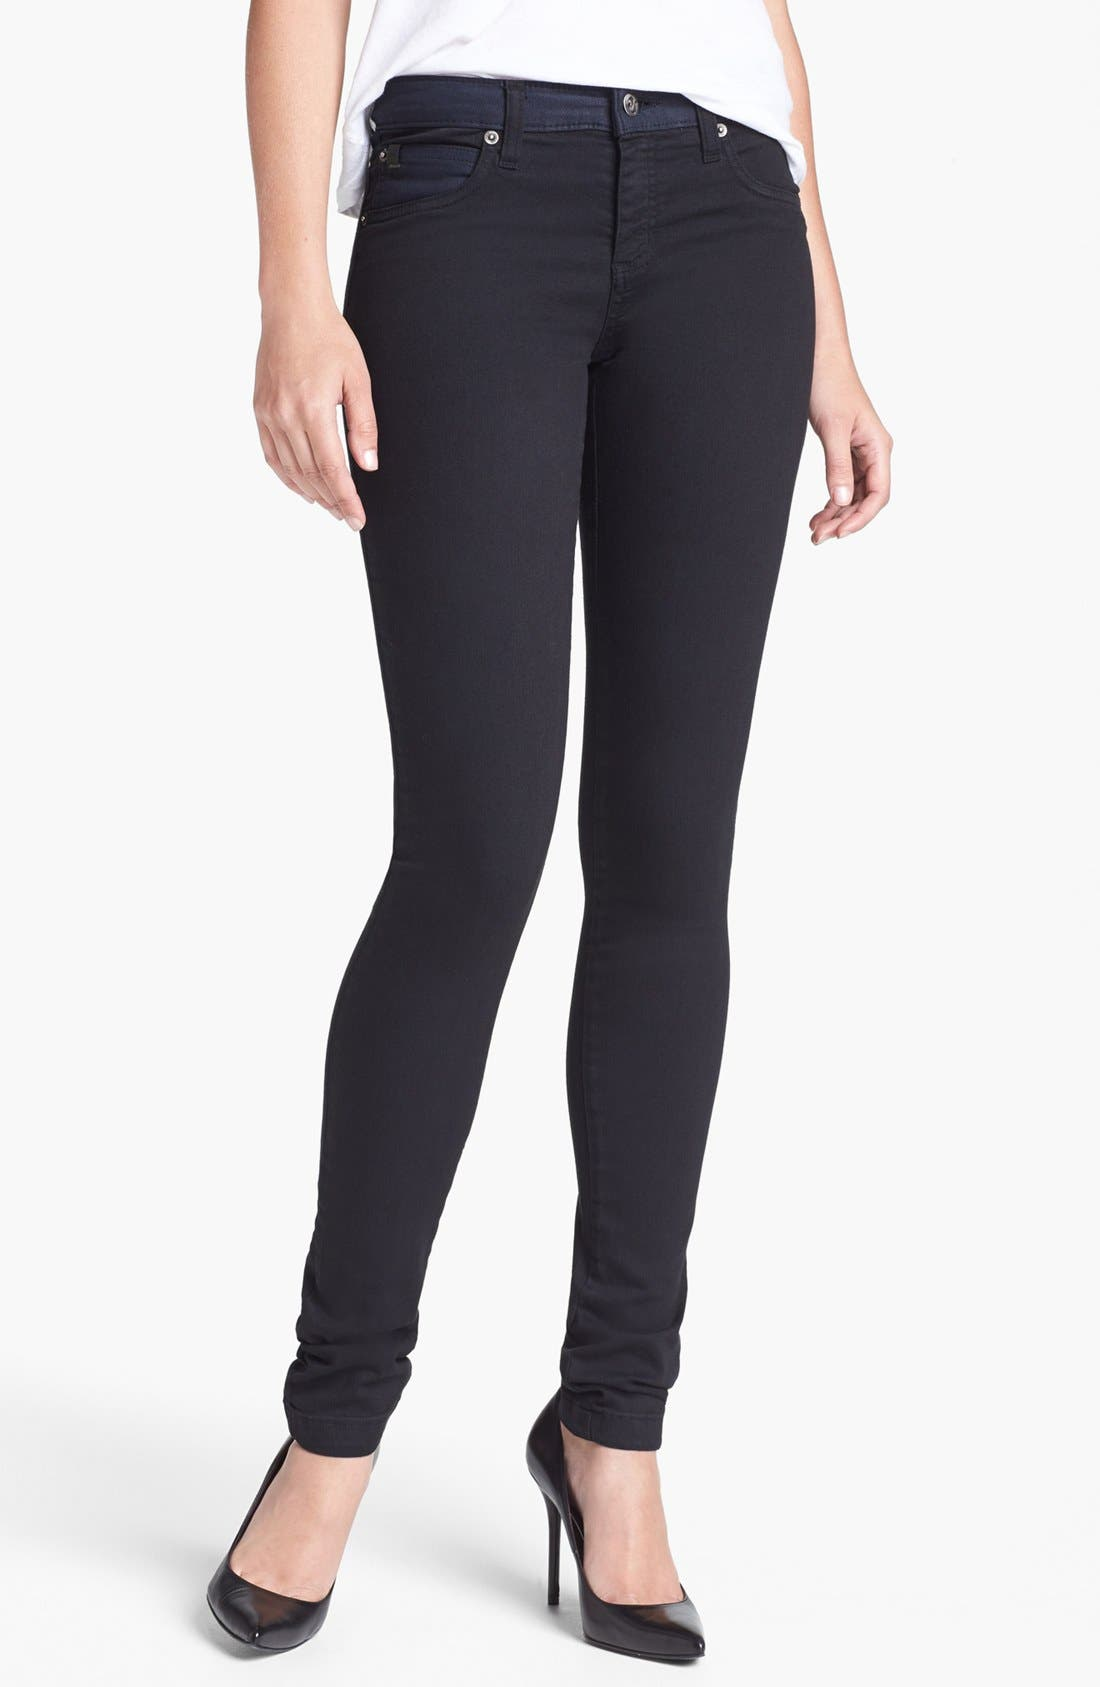 Main Image - Yoga Jeans by Second Denim High Rise Colorblock Skinny Jeans